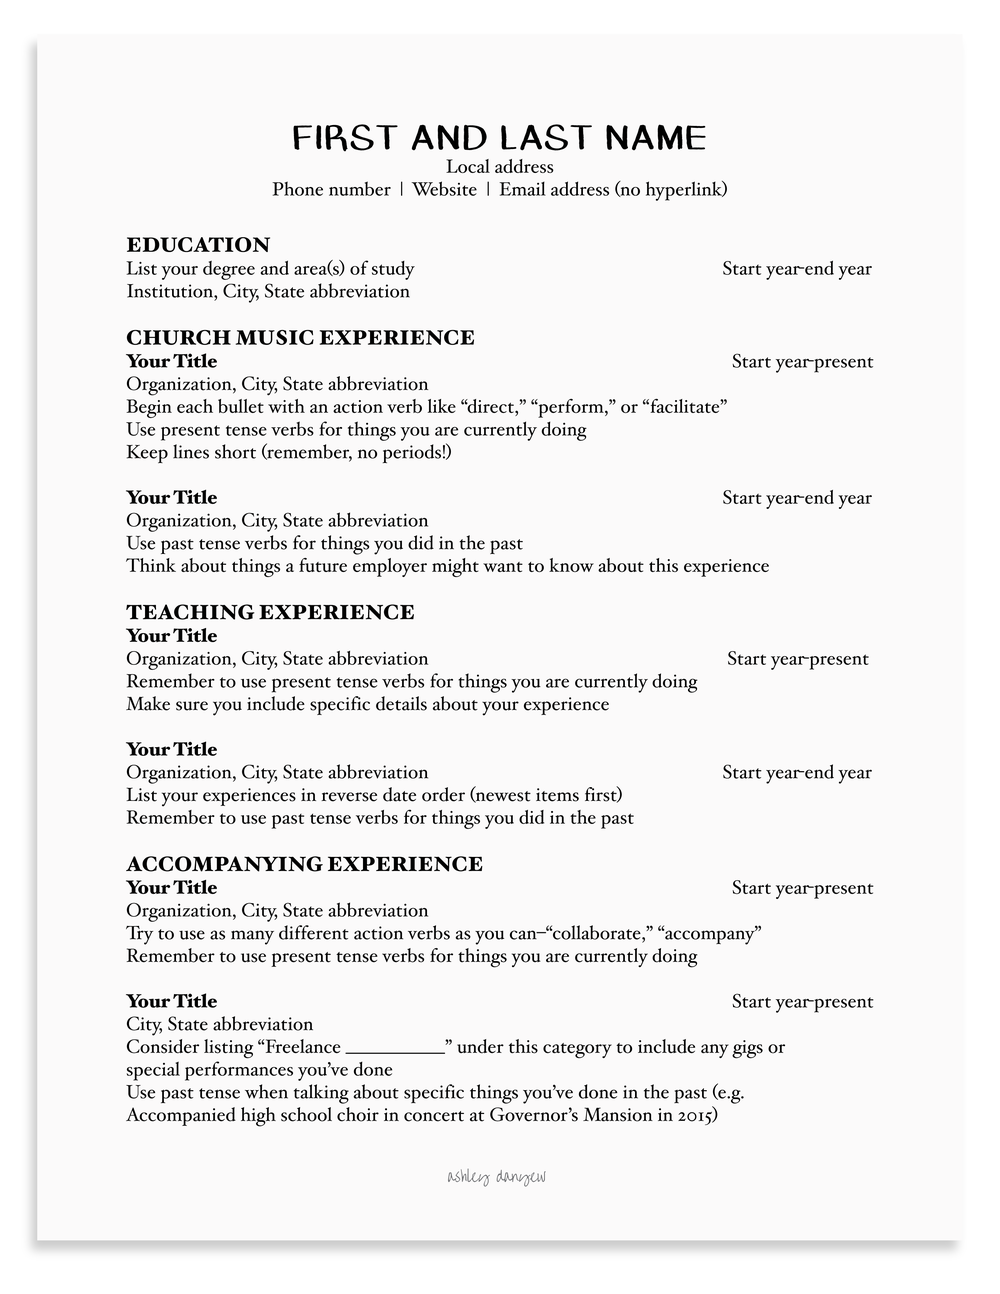 Resume-Writing Guide-22.png